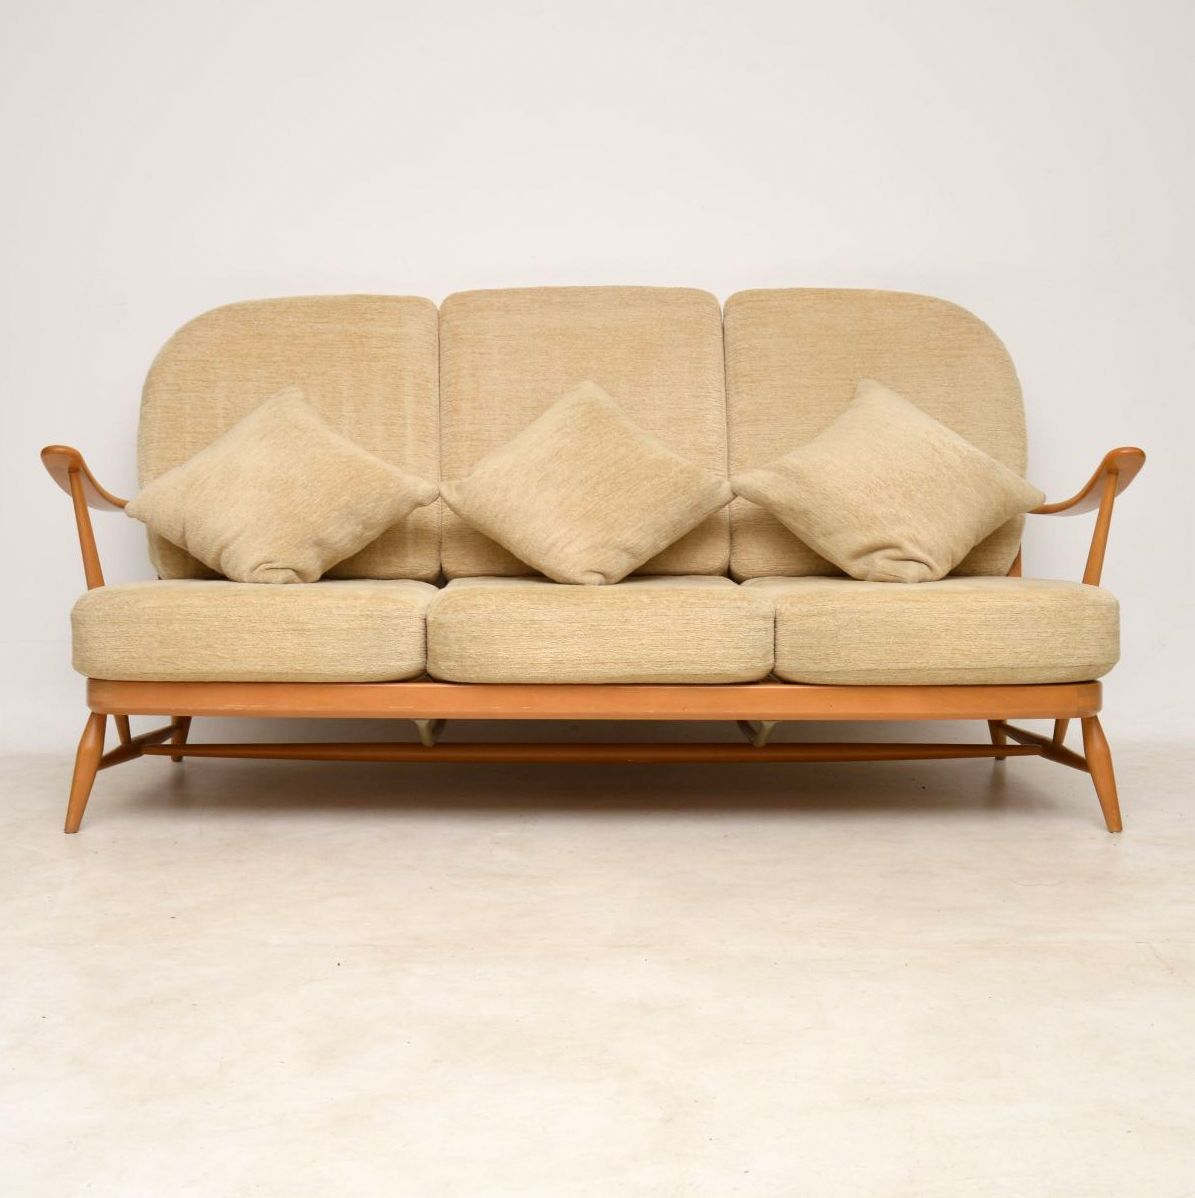 feather filled sofas second hand arhaus sleeper sofa 1960s vintage ercol and pair of armchairs